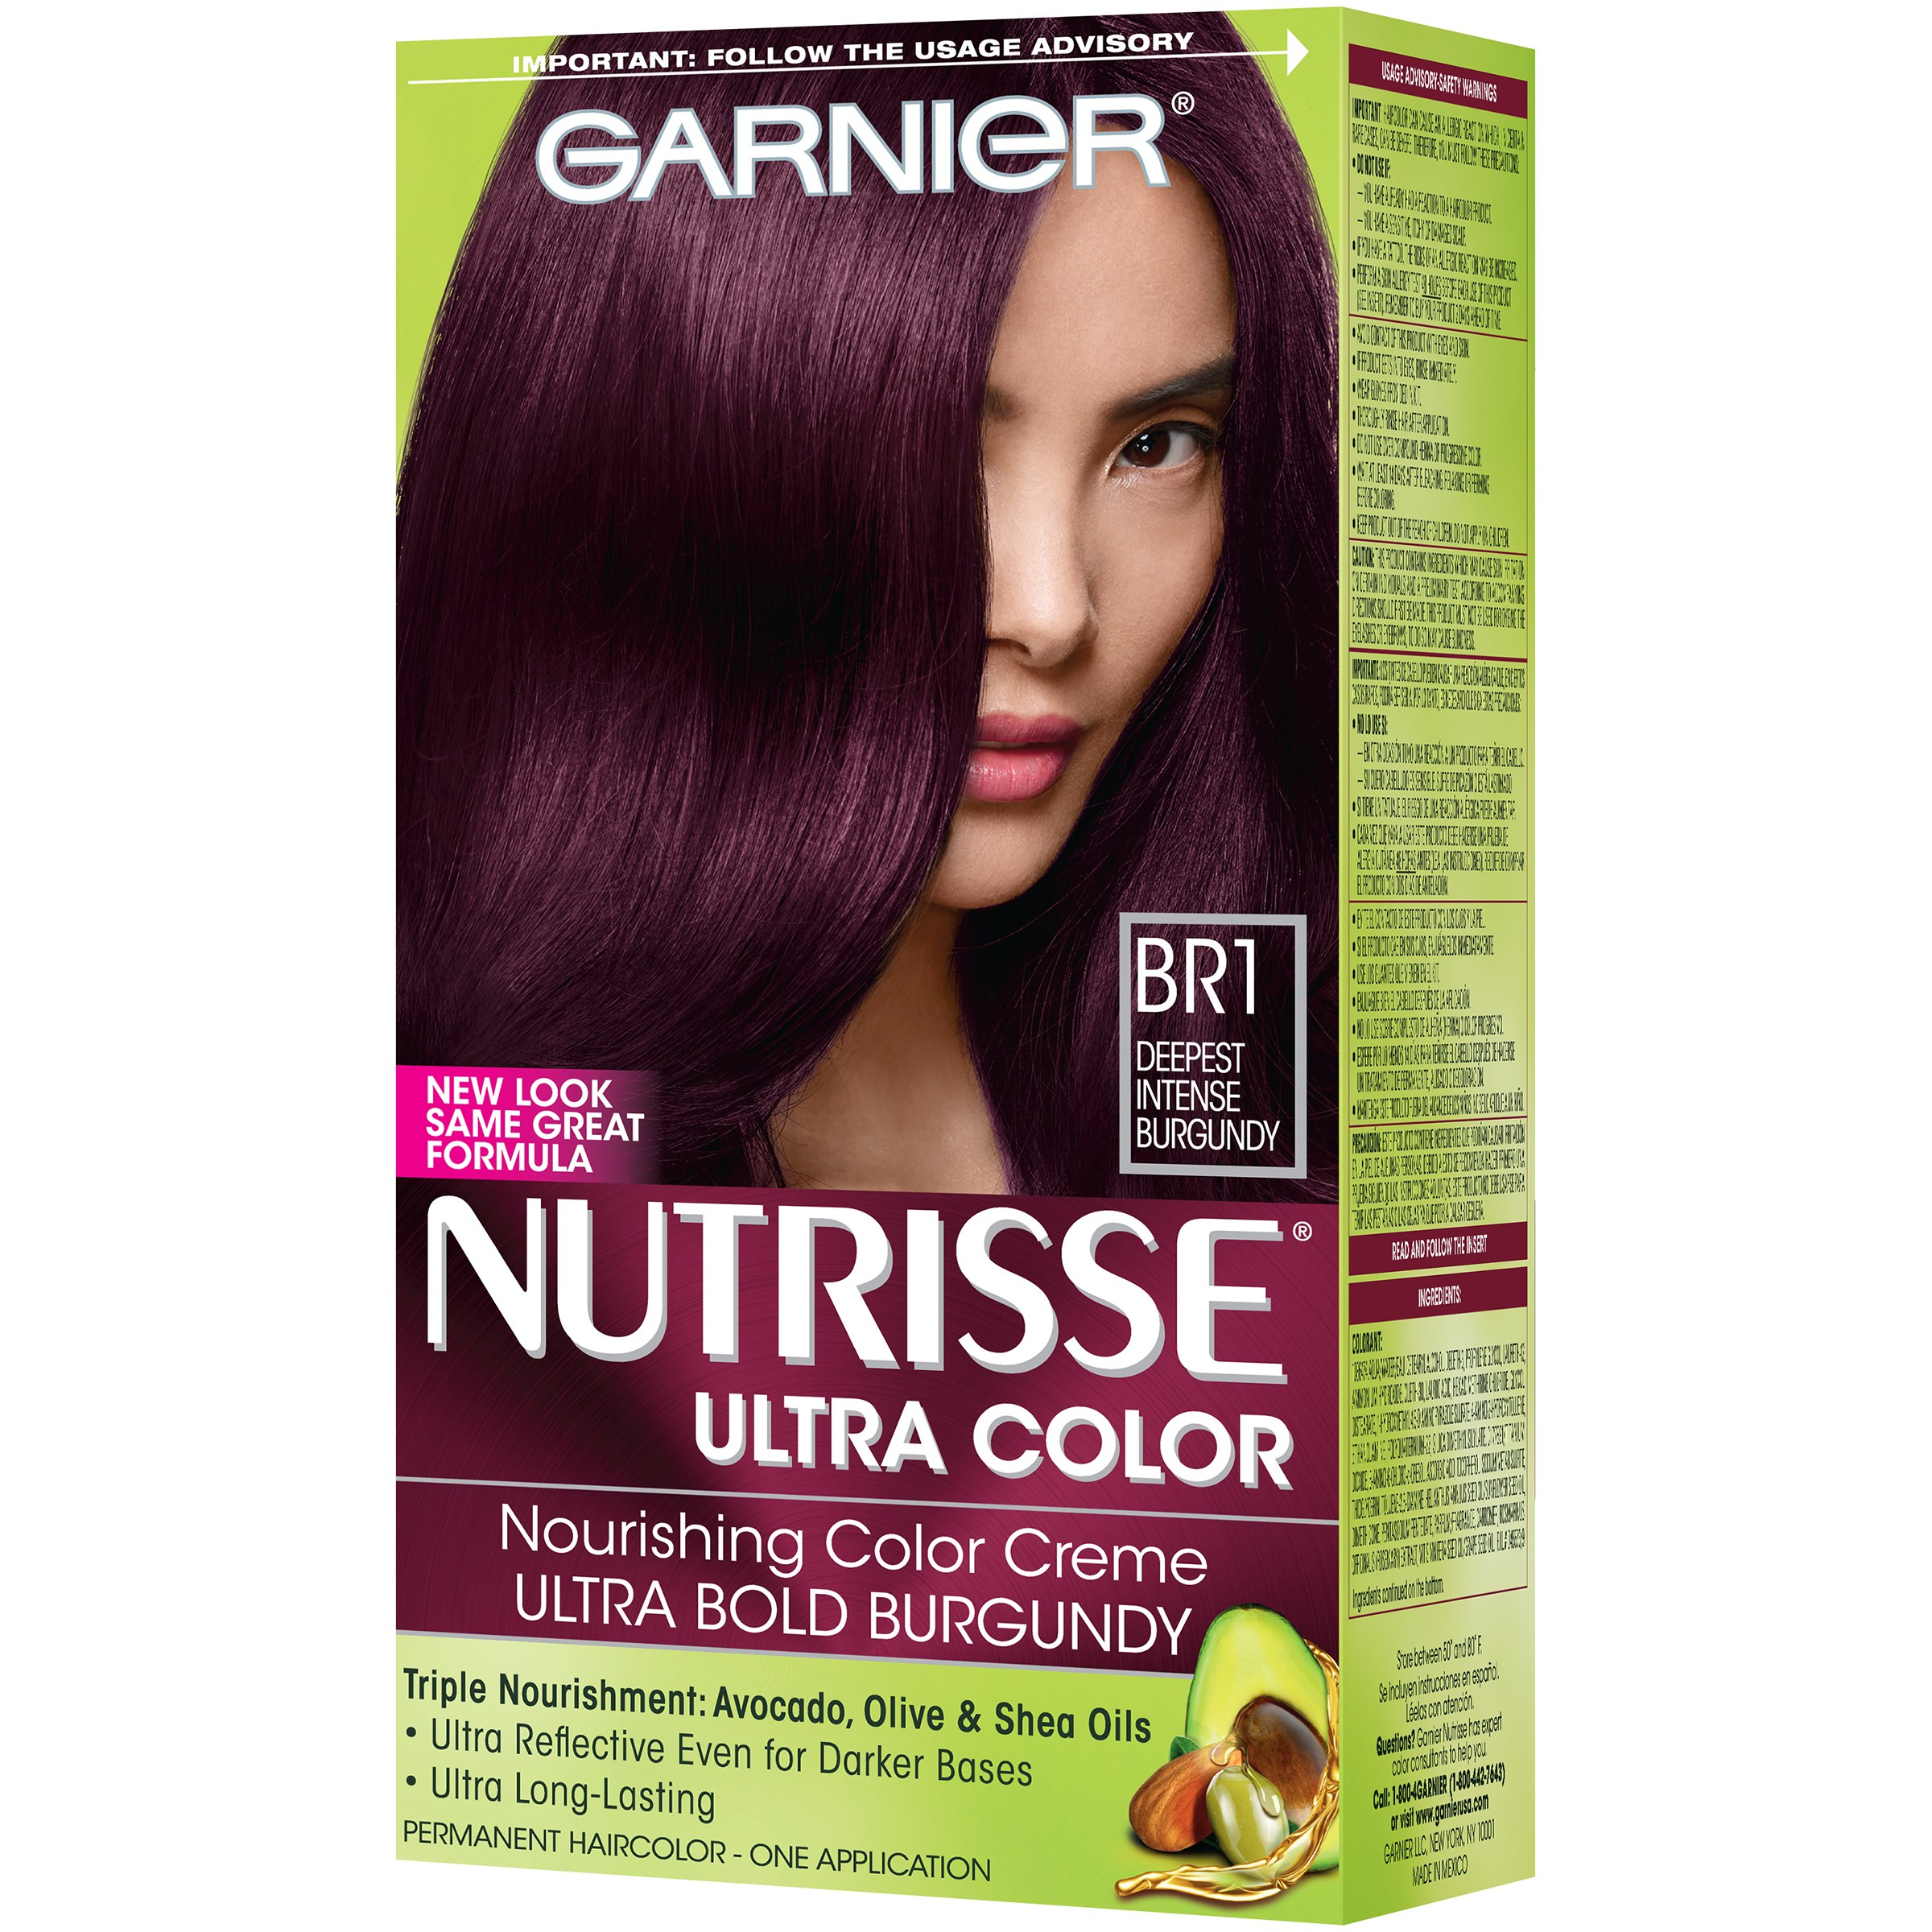 Check Out These Gorgeous Burgundy Hair Colors For A Y Sultry Look That Will